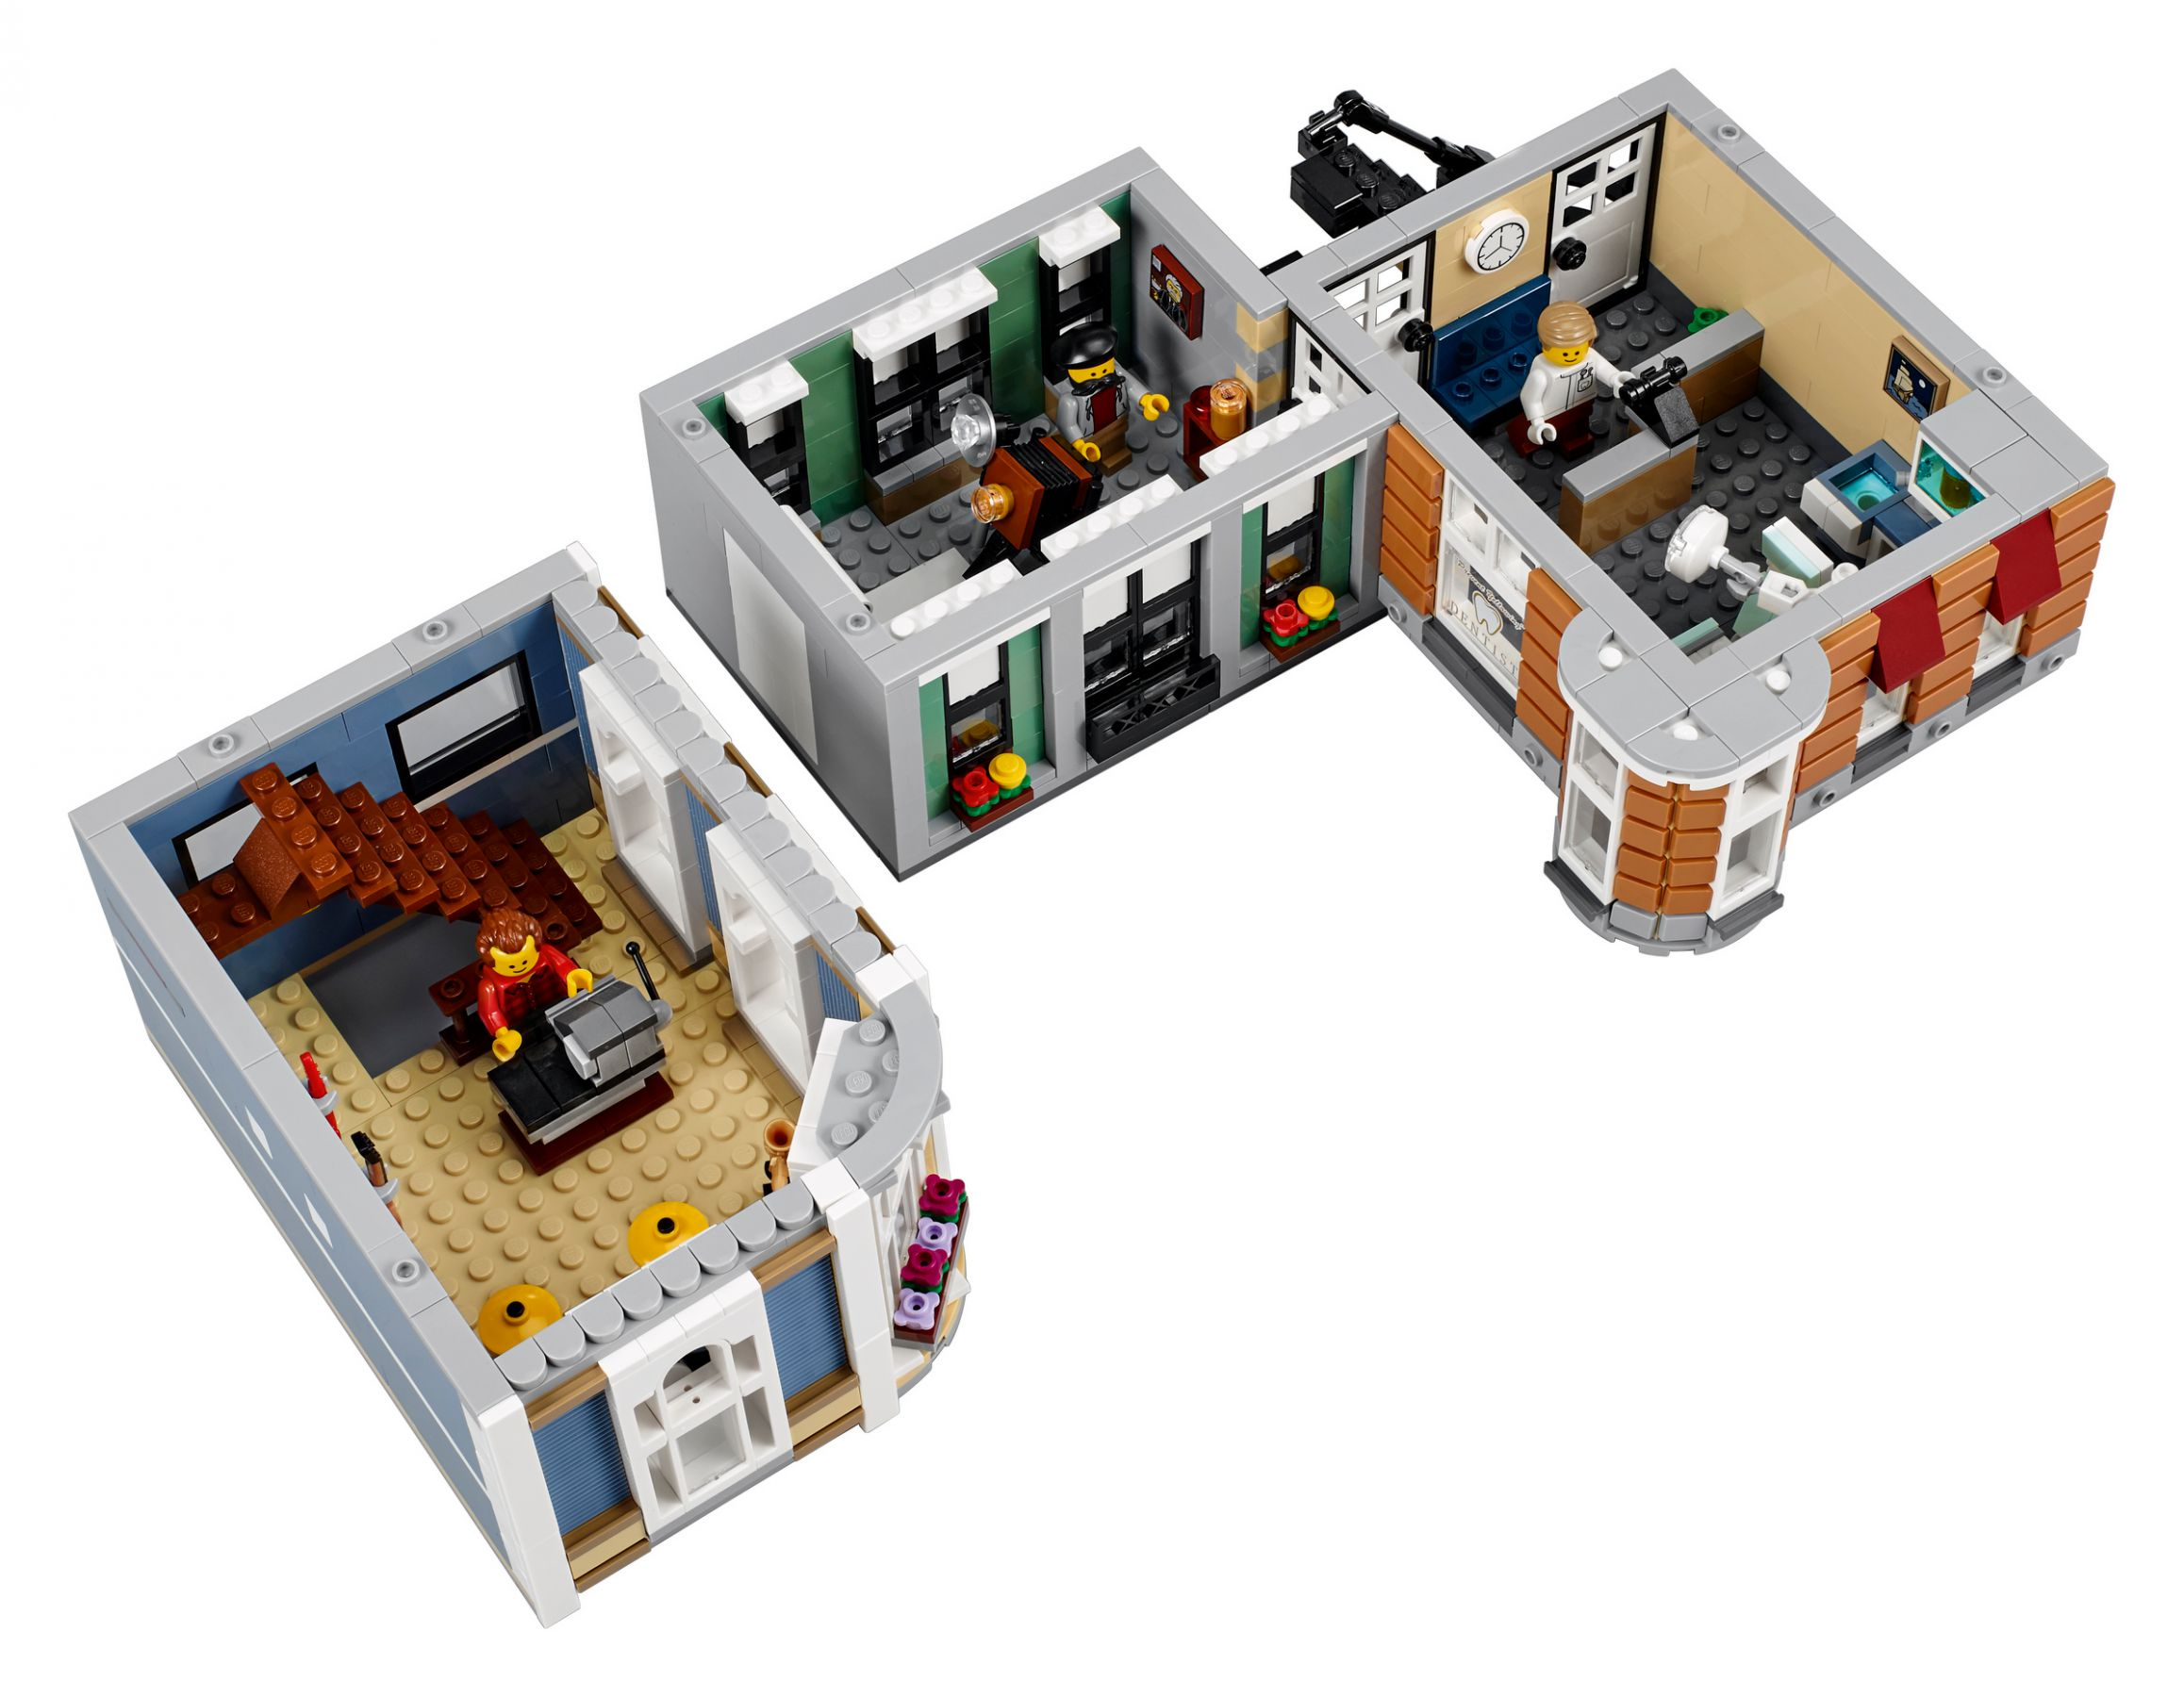 LEGO Advanced Models 10255 Stadtleben (Assembly Square) LEGO_10255_alt6.jpg